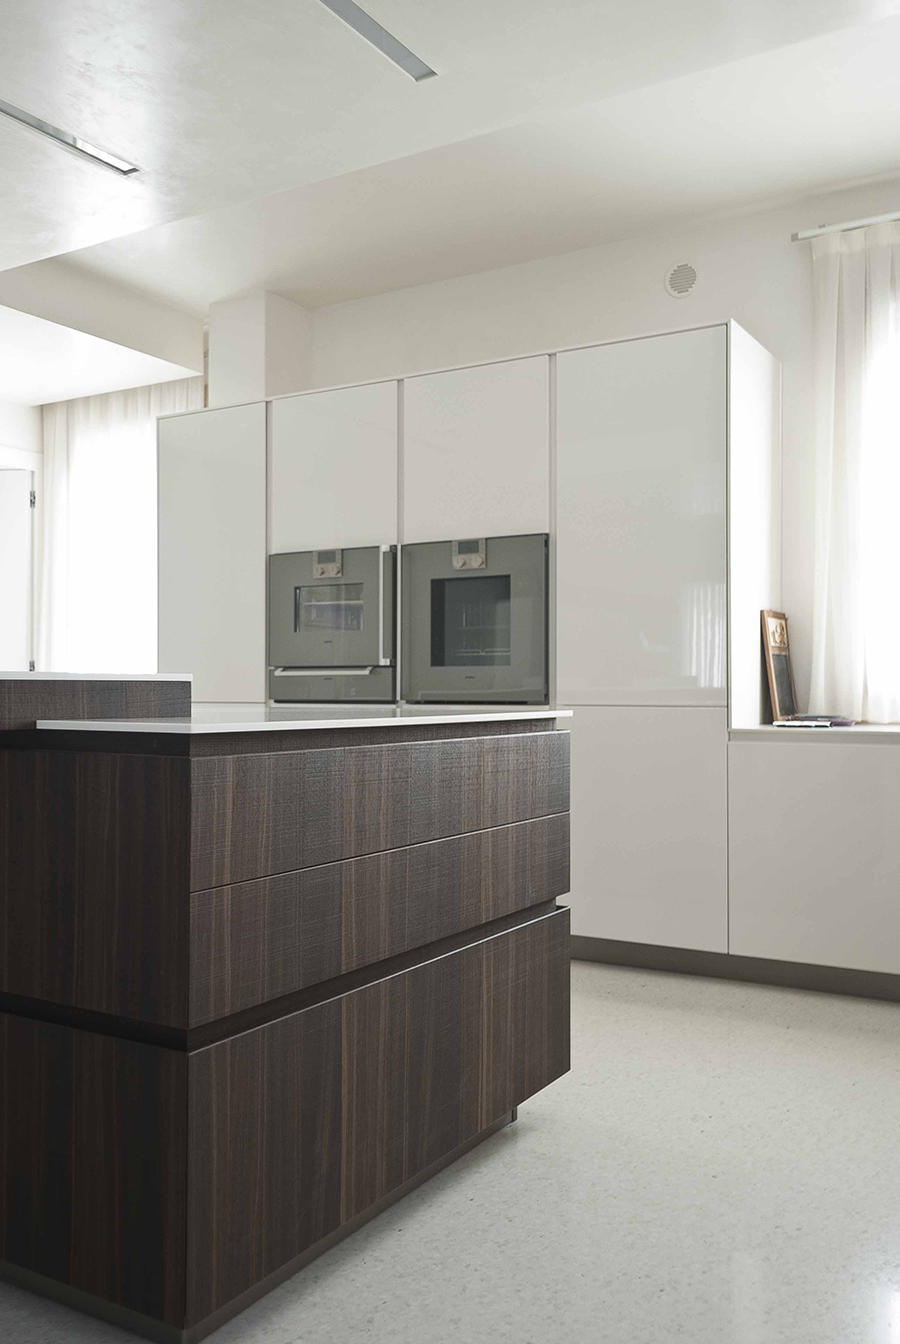 a touch of style - Todeschini Cucine